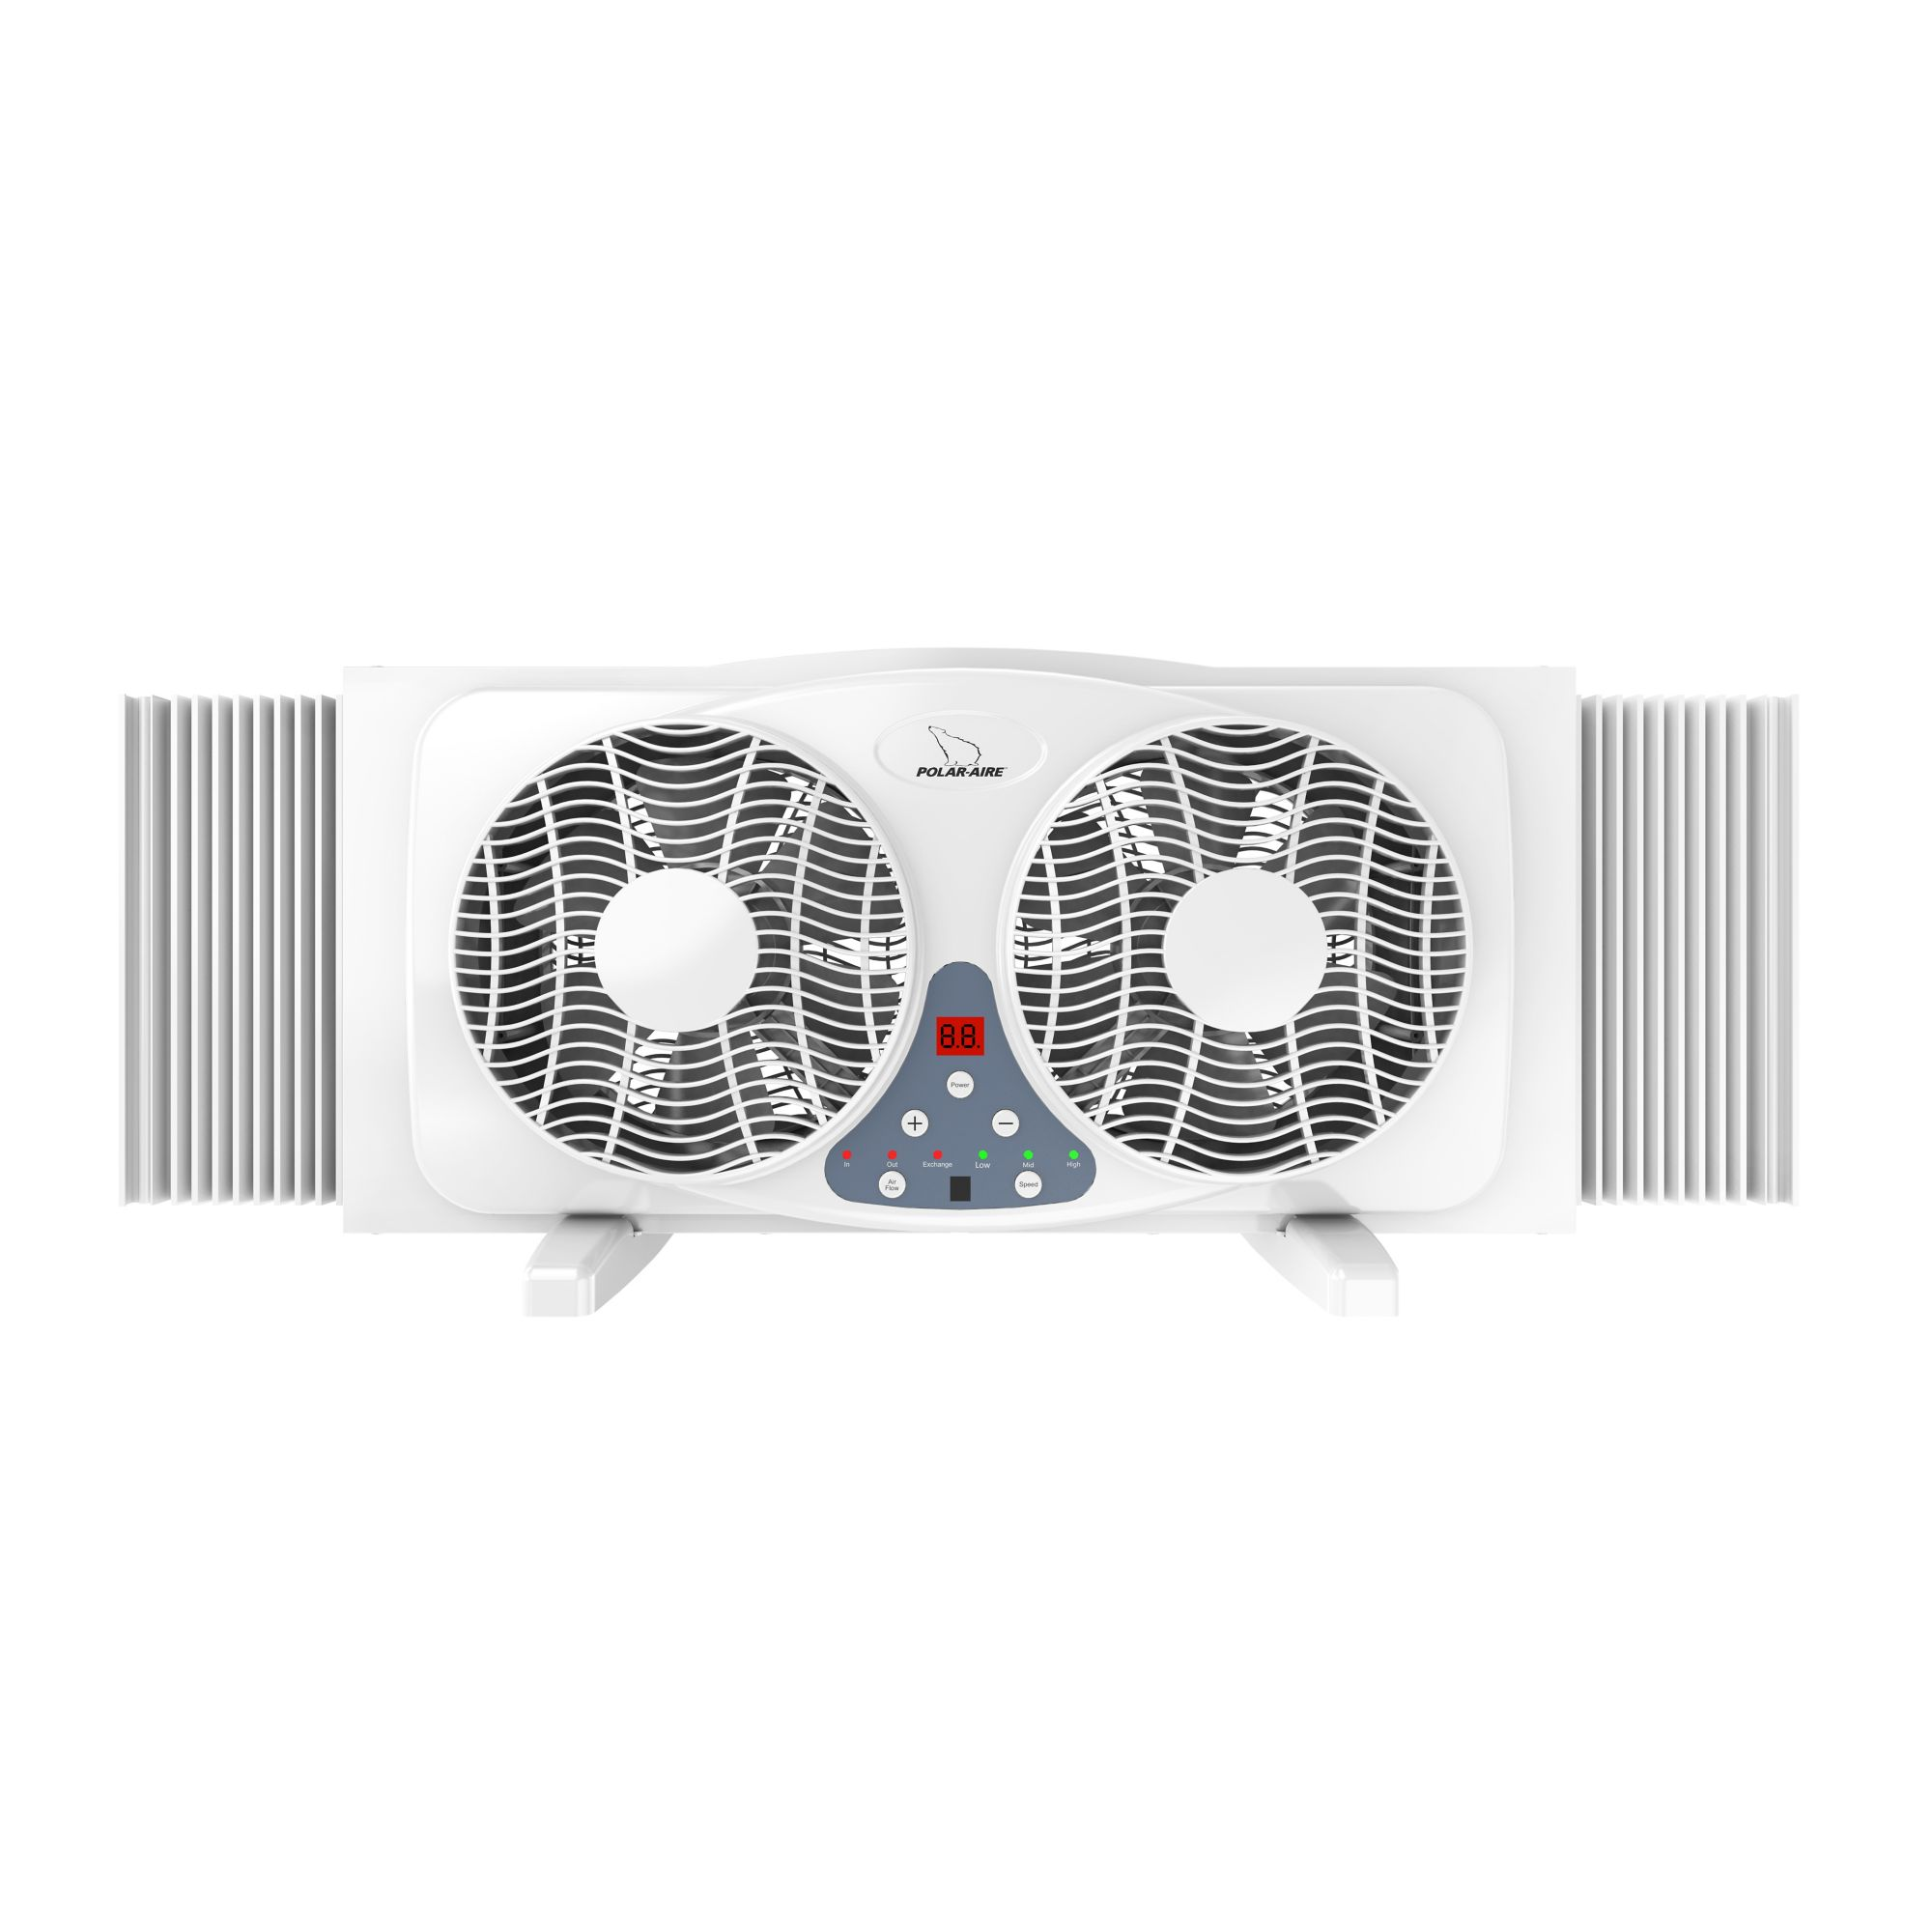 polar aire 9 digital twin window fan with reversible airflow blades and remote control